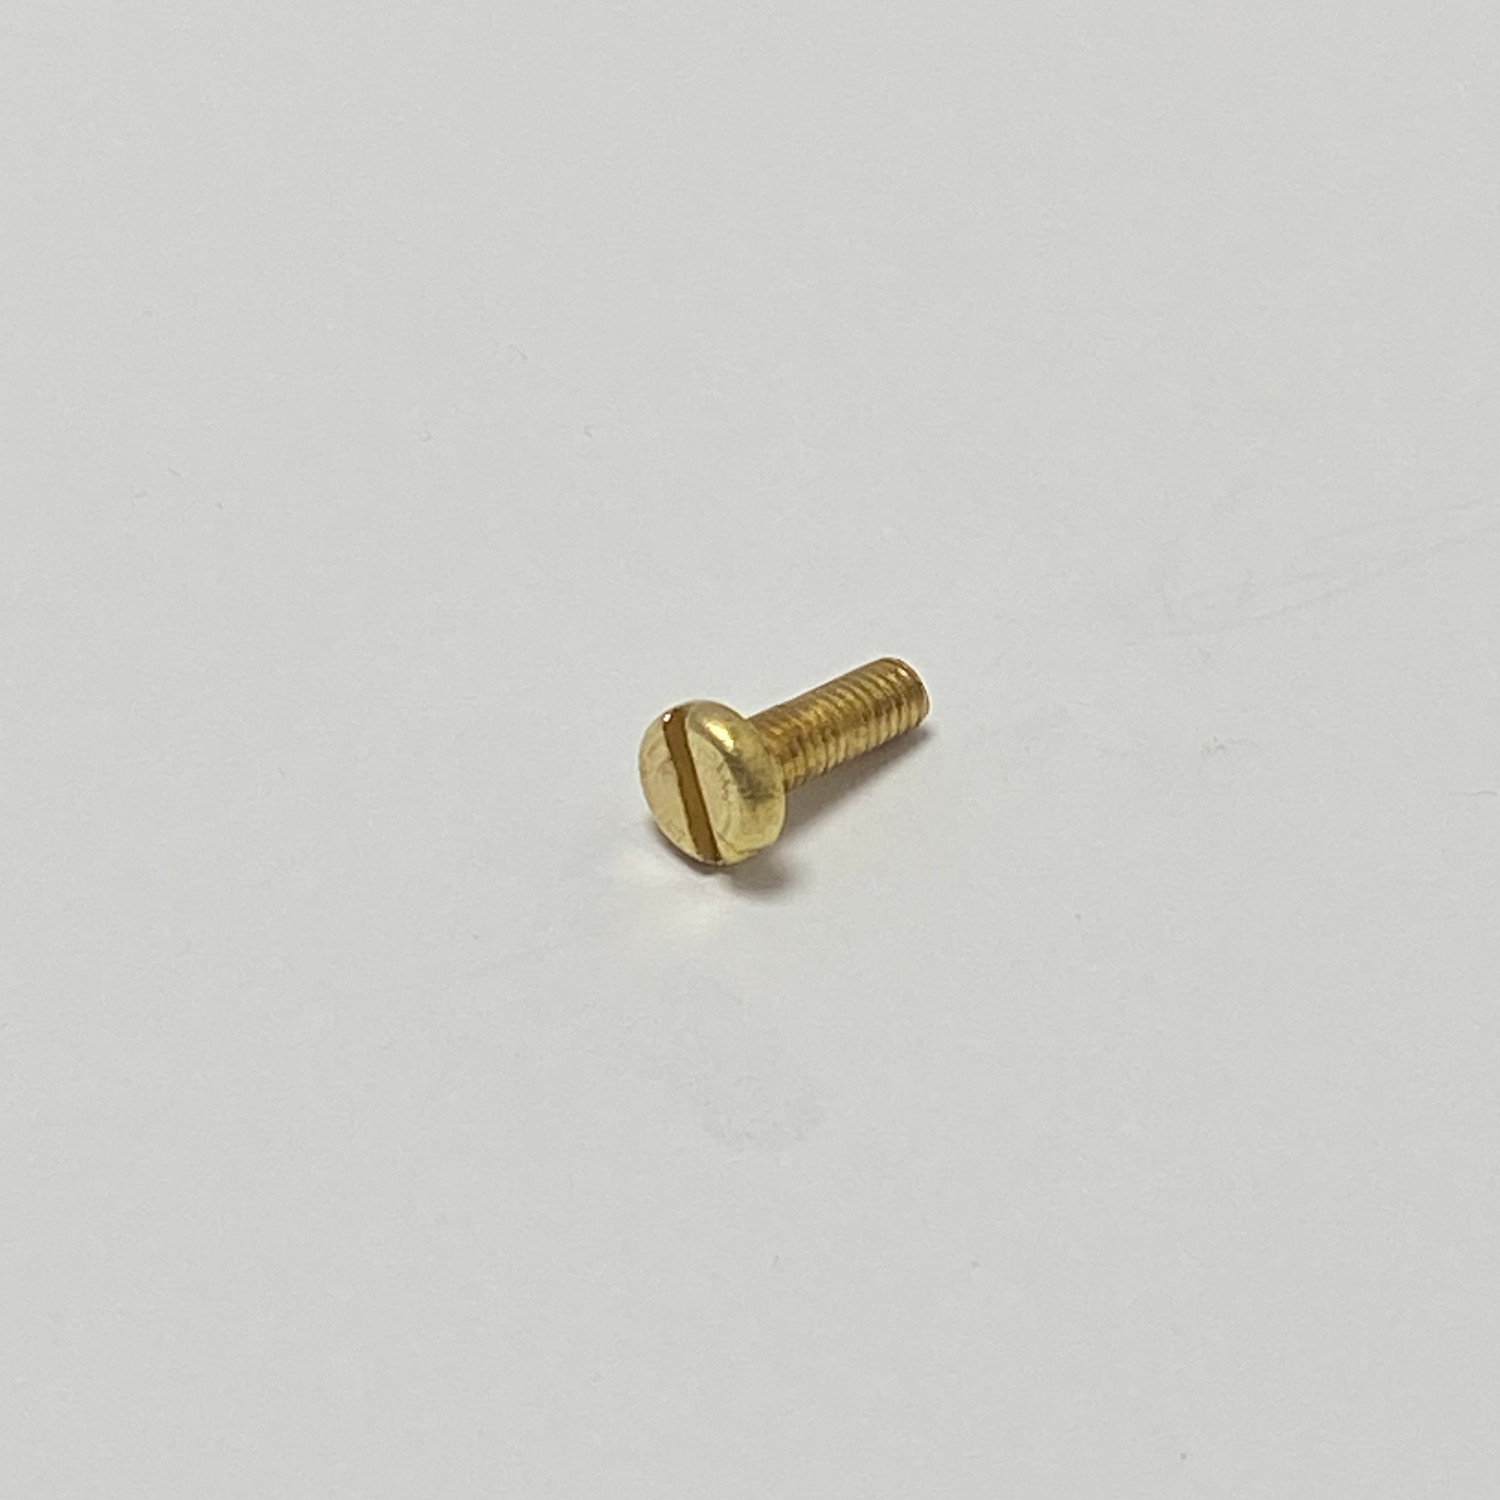 M2.5 X 12 BRASS SLOTTED CHEESE SCREWS